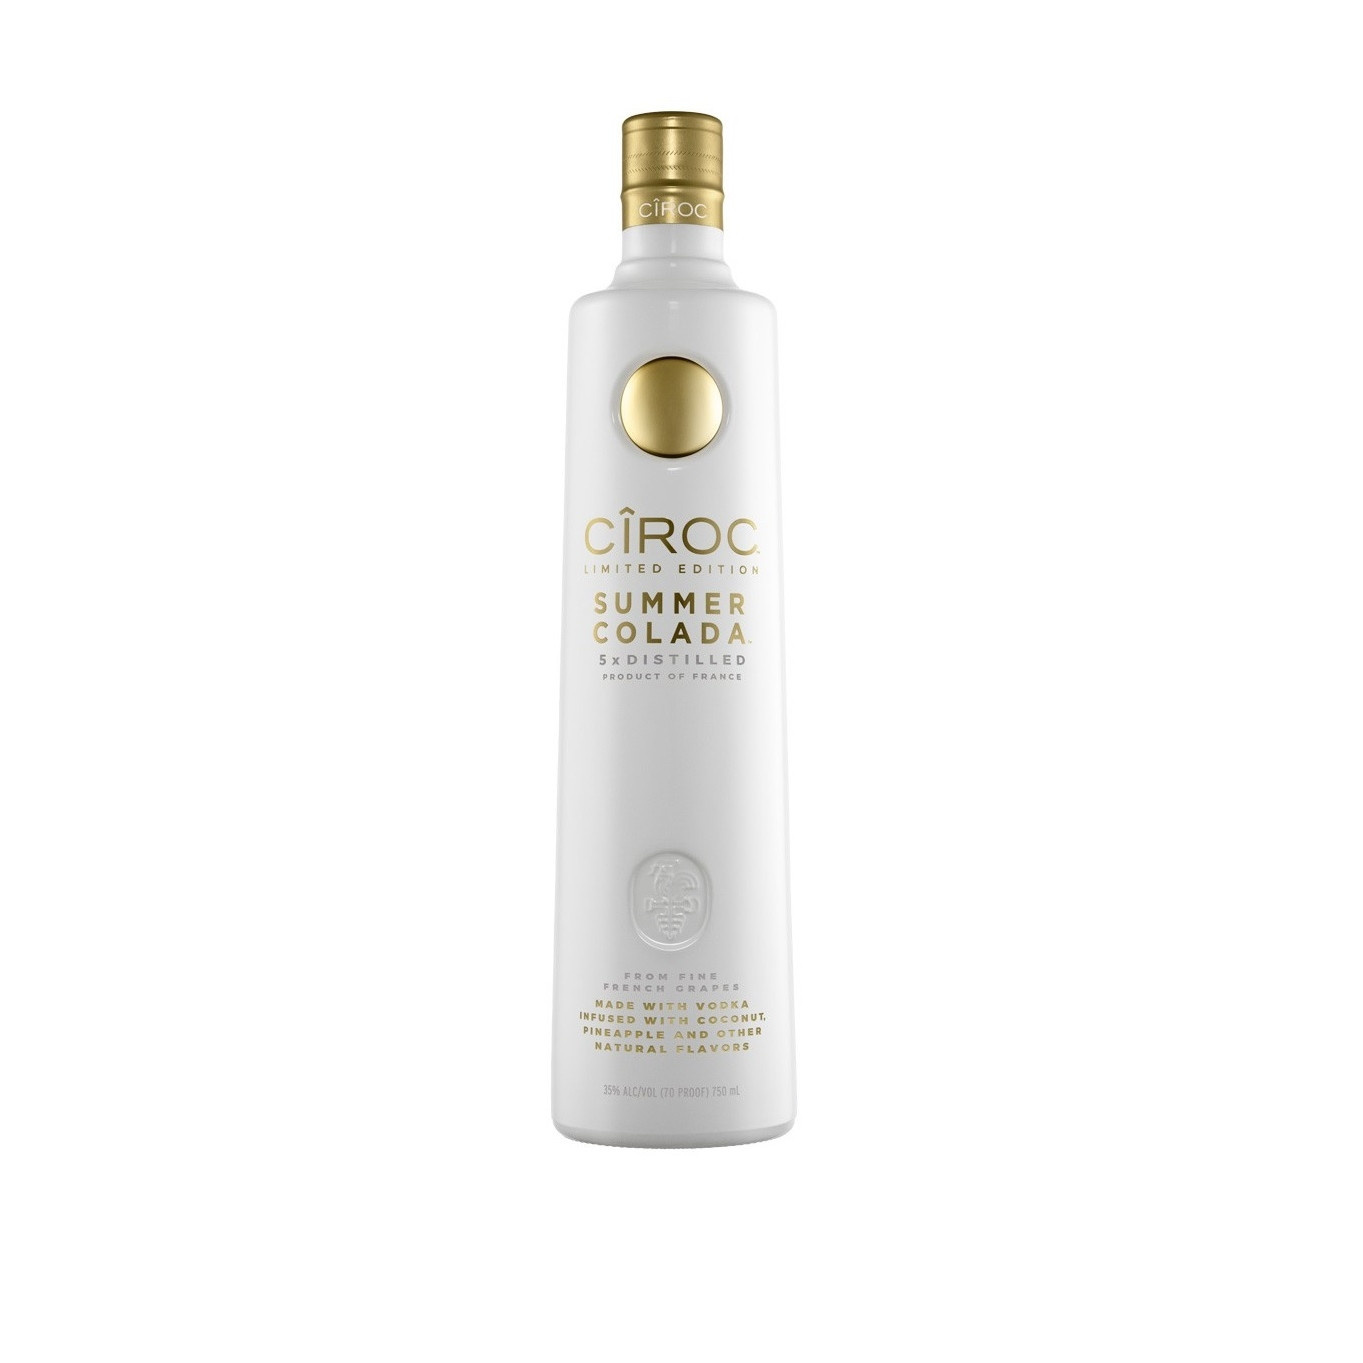 Ciroc Summer Colada 750ML   On Sale/ was 33.99   Now $21.99